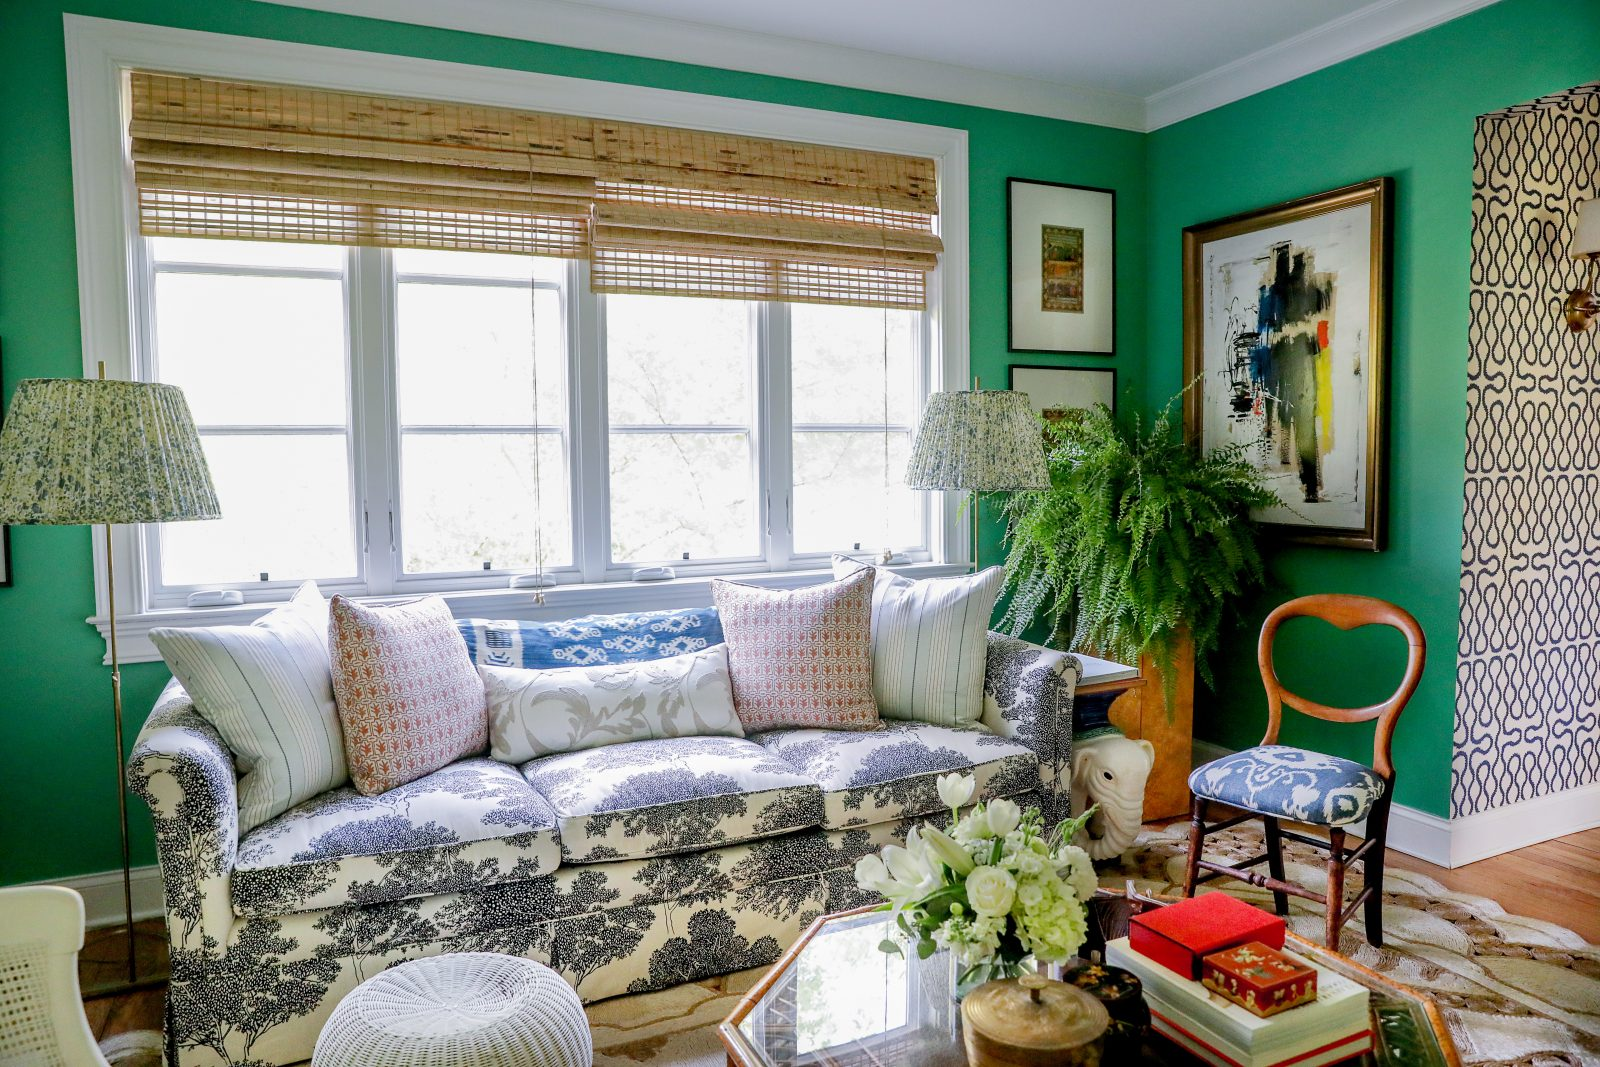 Green living room with blue and white accents and aesthetics